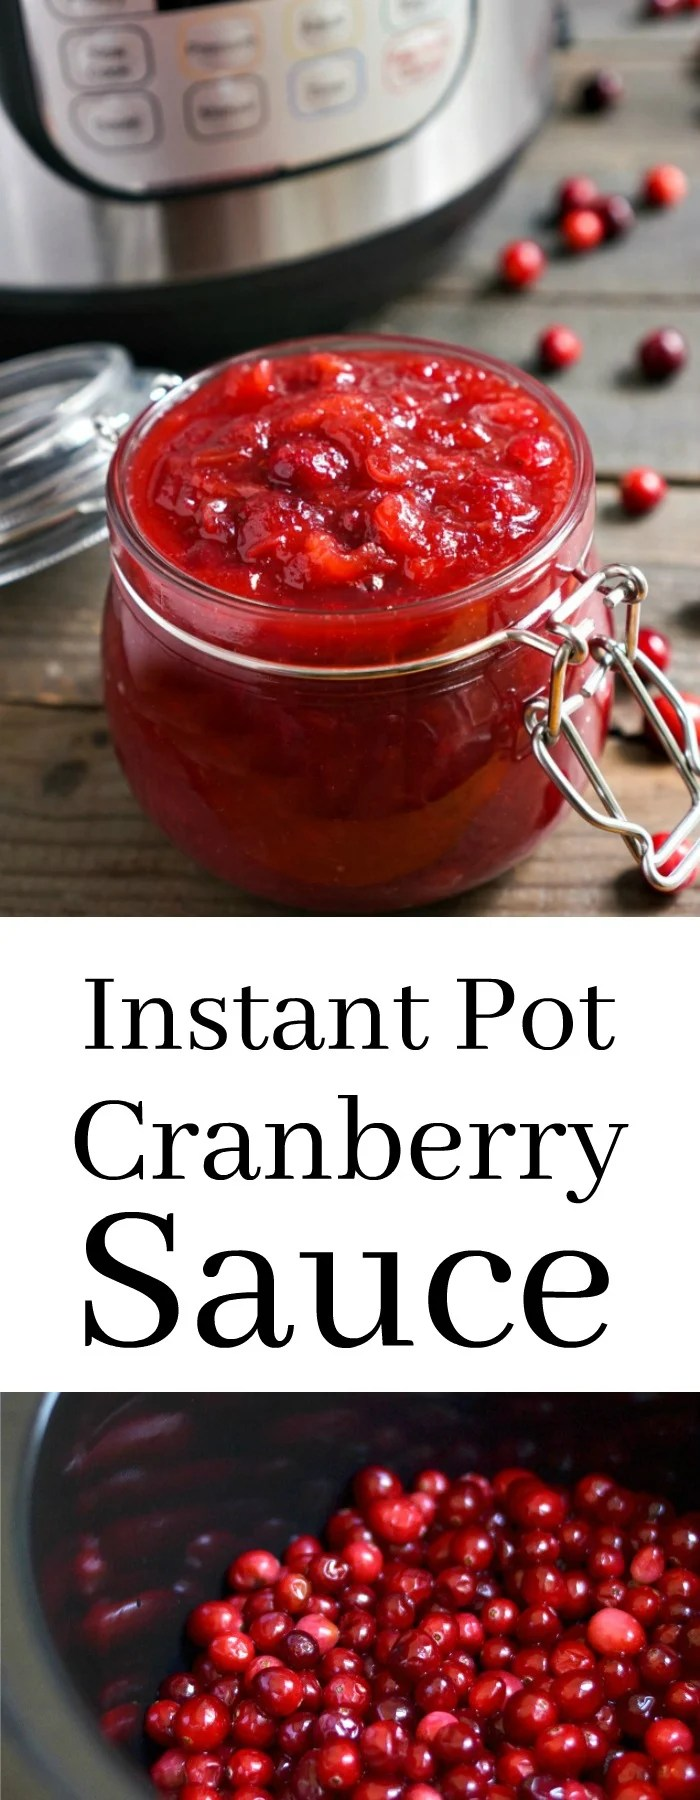 This Instant Pot Cranberry Sauce is a must-have side dish for your Thanksgiving table. Such an easy, healthy holiday recipe!